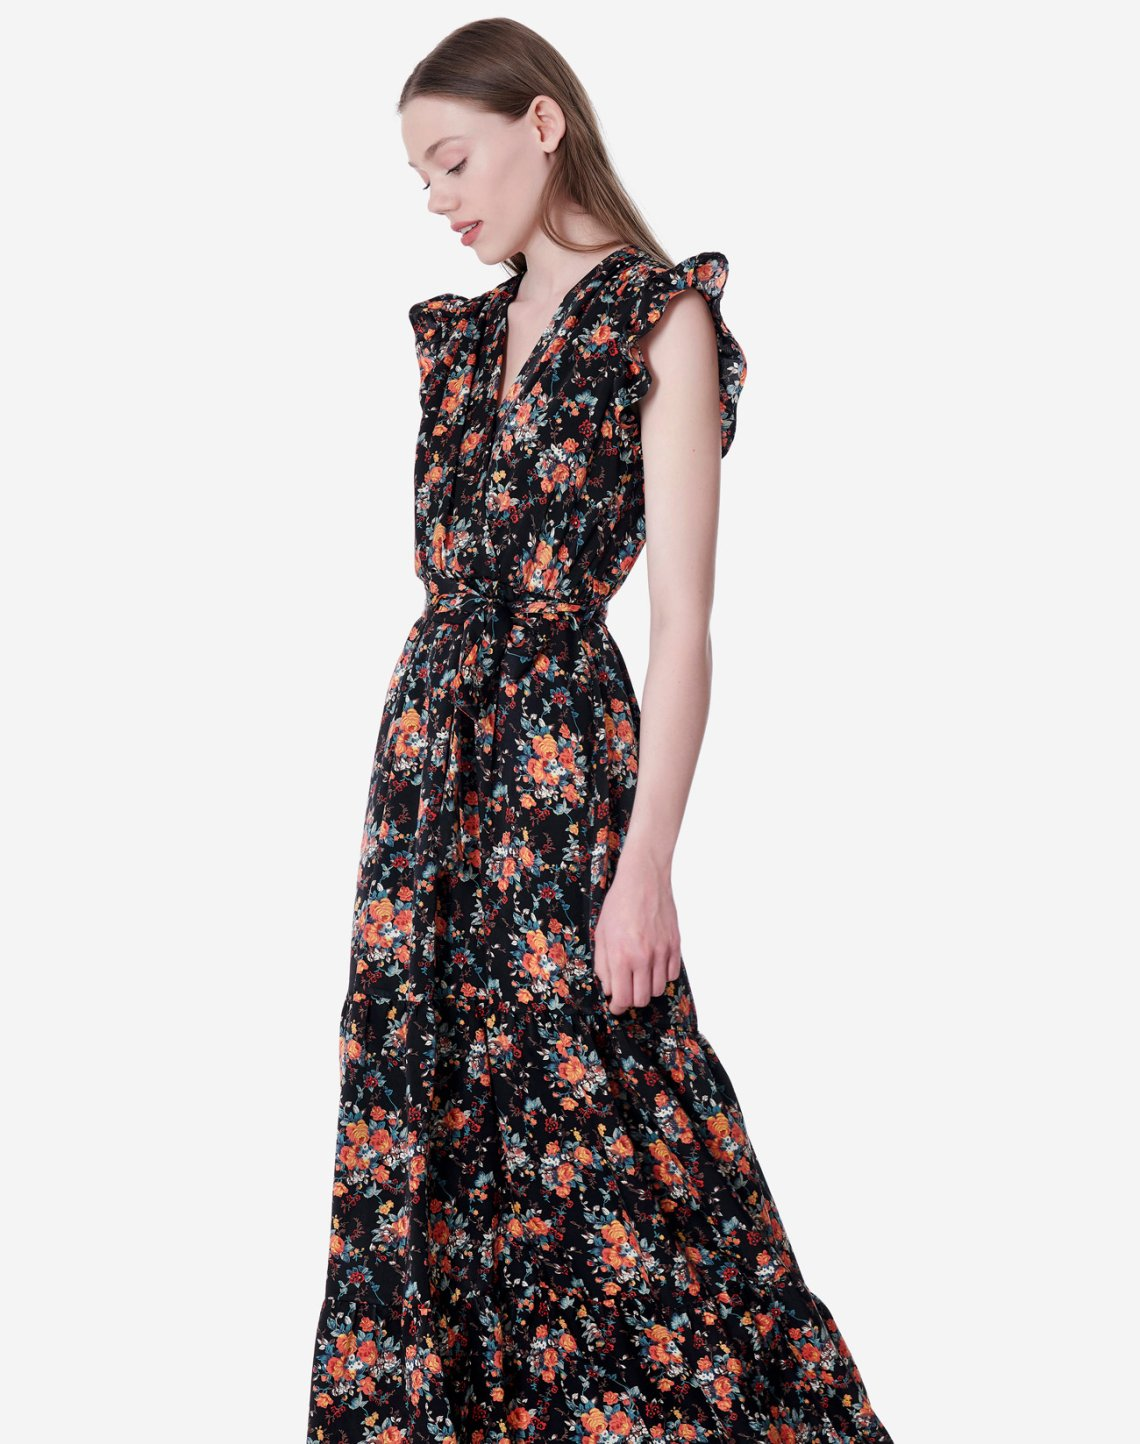 Floral maxi dress with ruffles